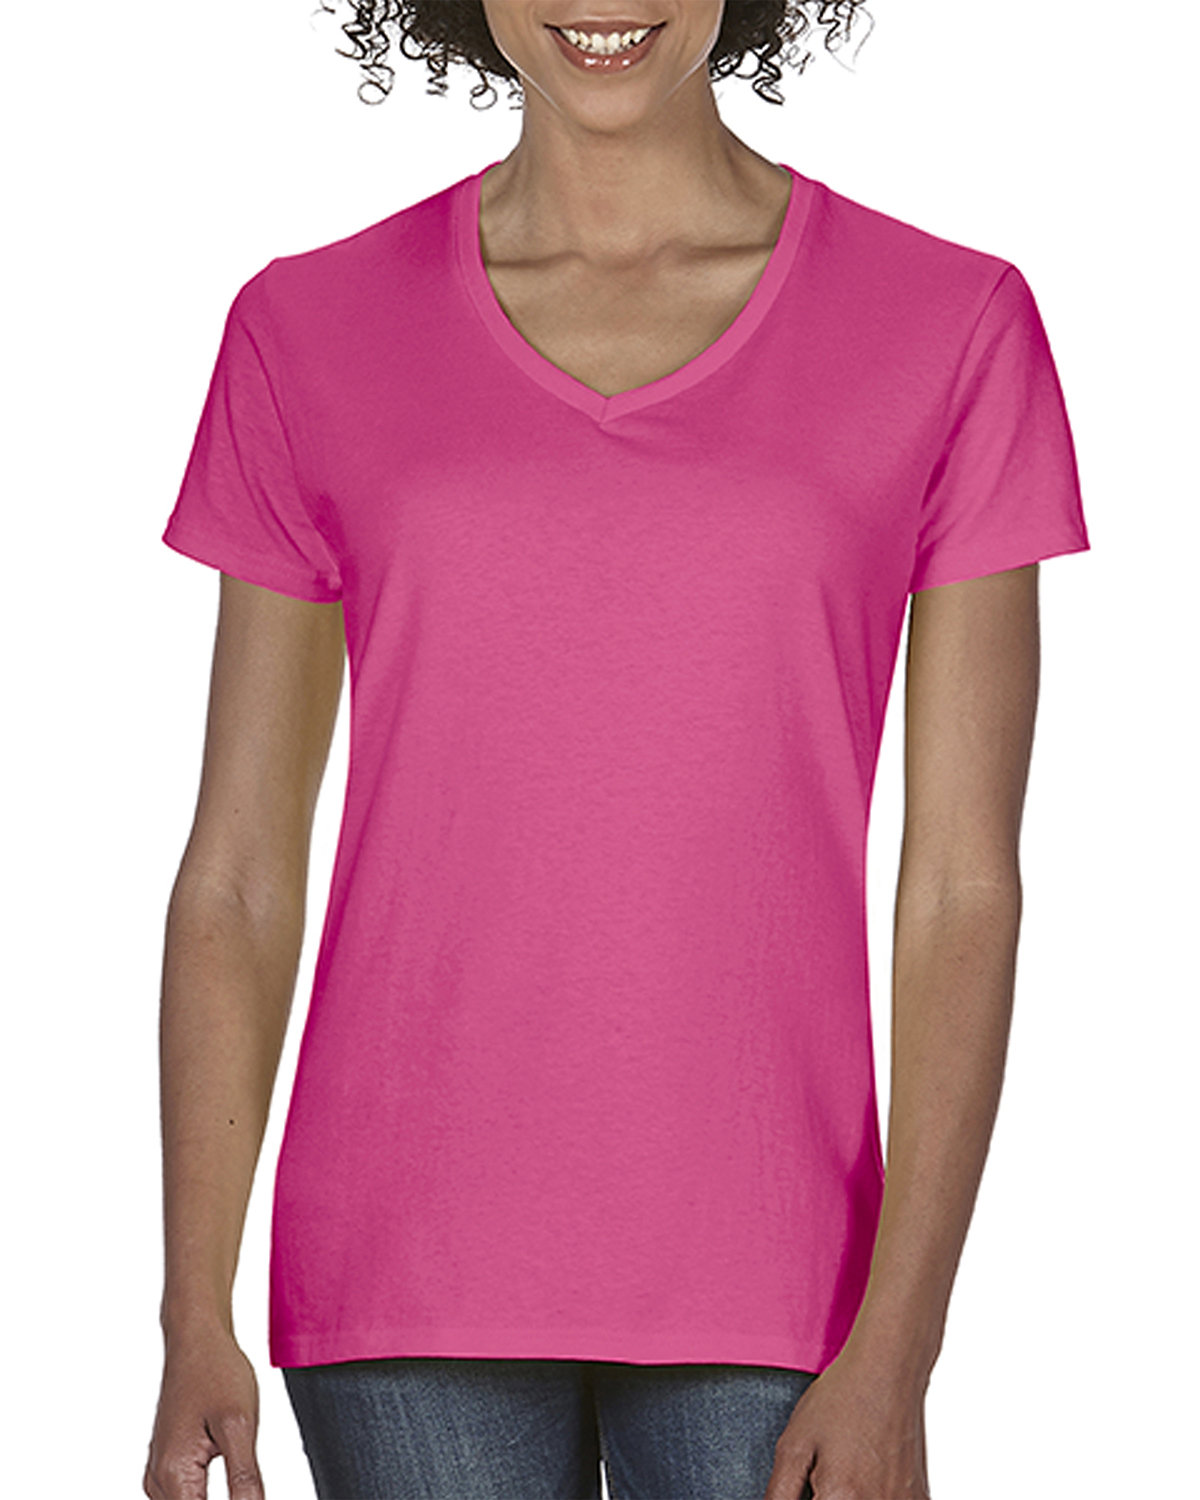 Comfort Colors Ladies'  Midweight RS V-Neck T-Shirt NEON PINK